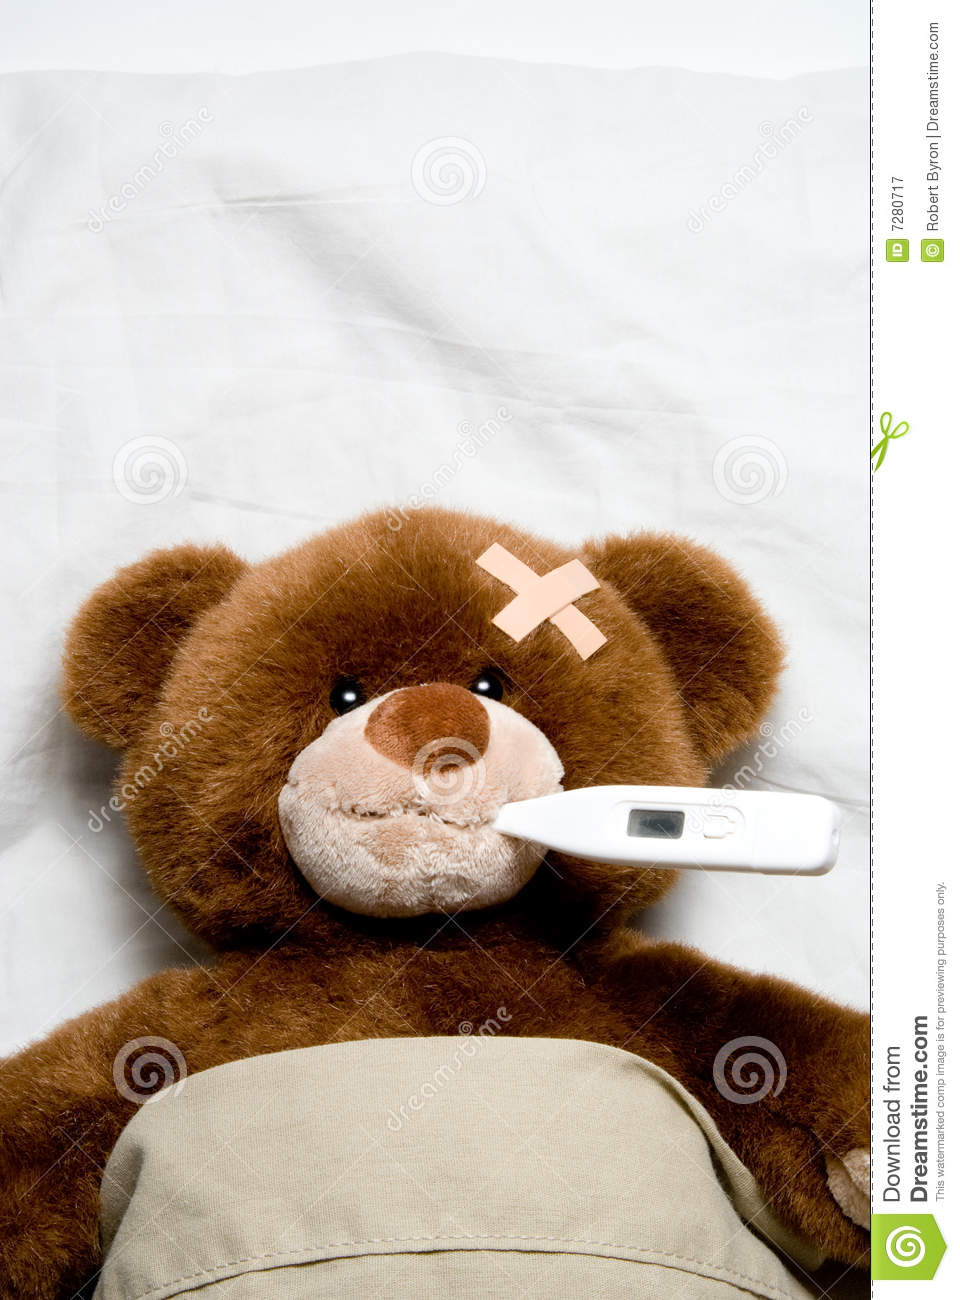 Clip Art Sick Teddy Bear